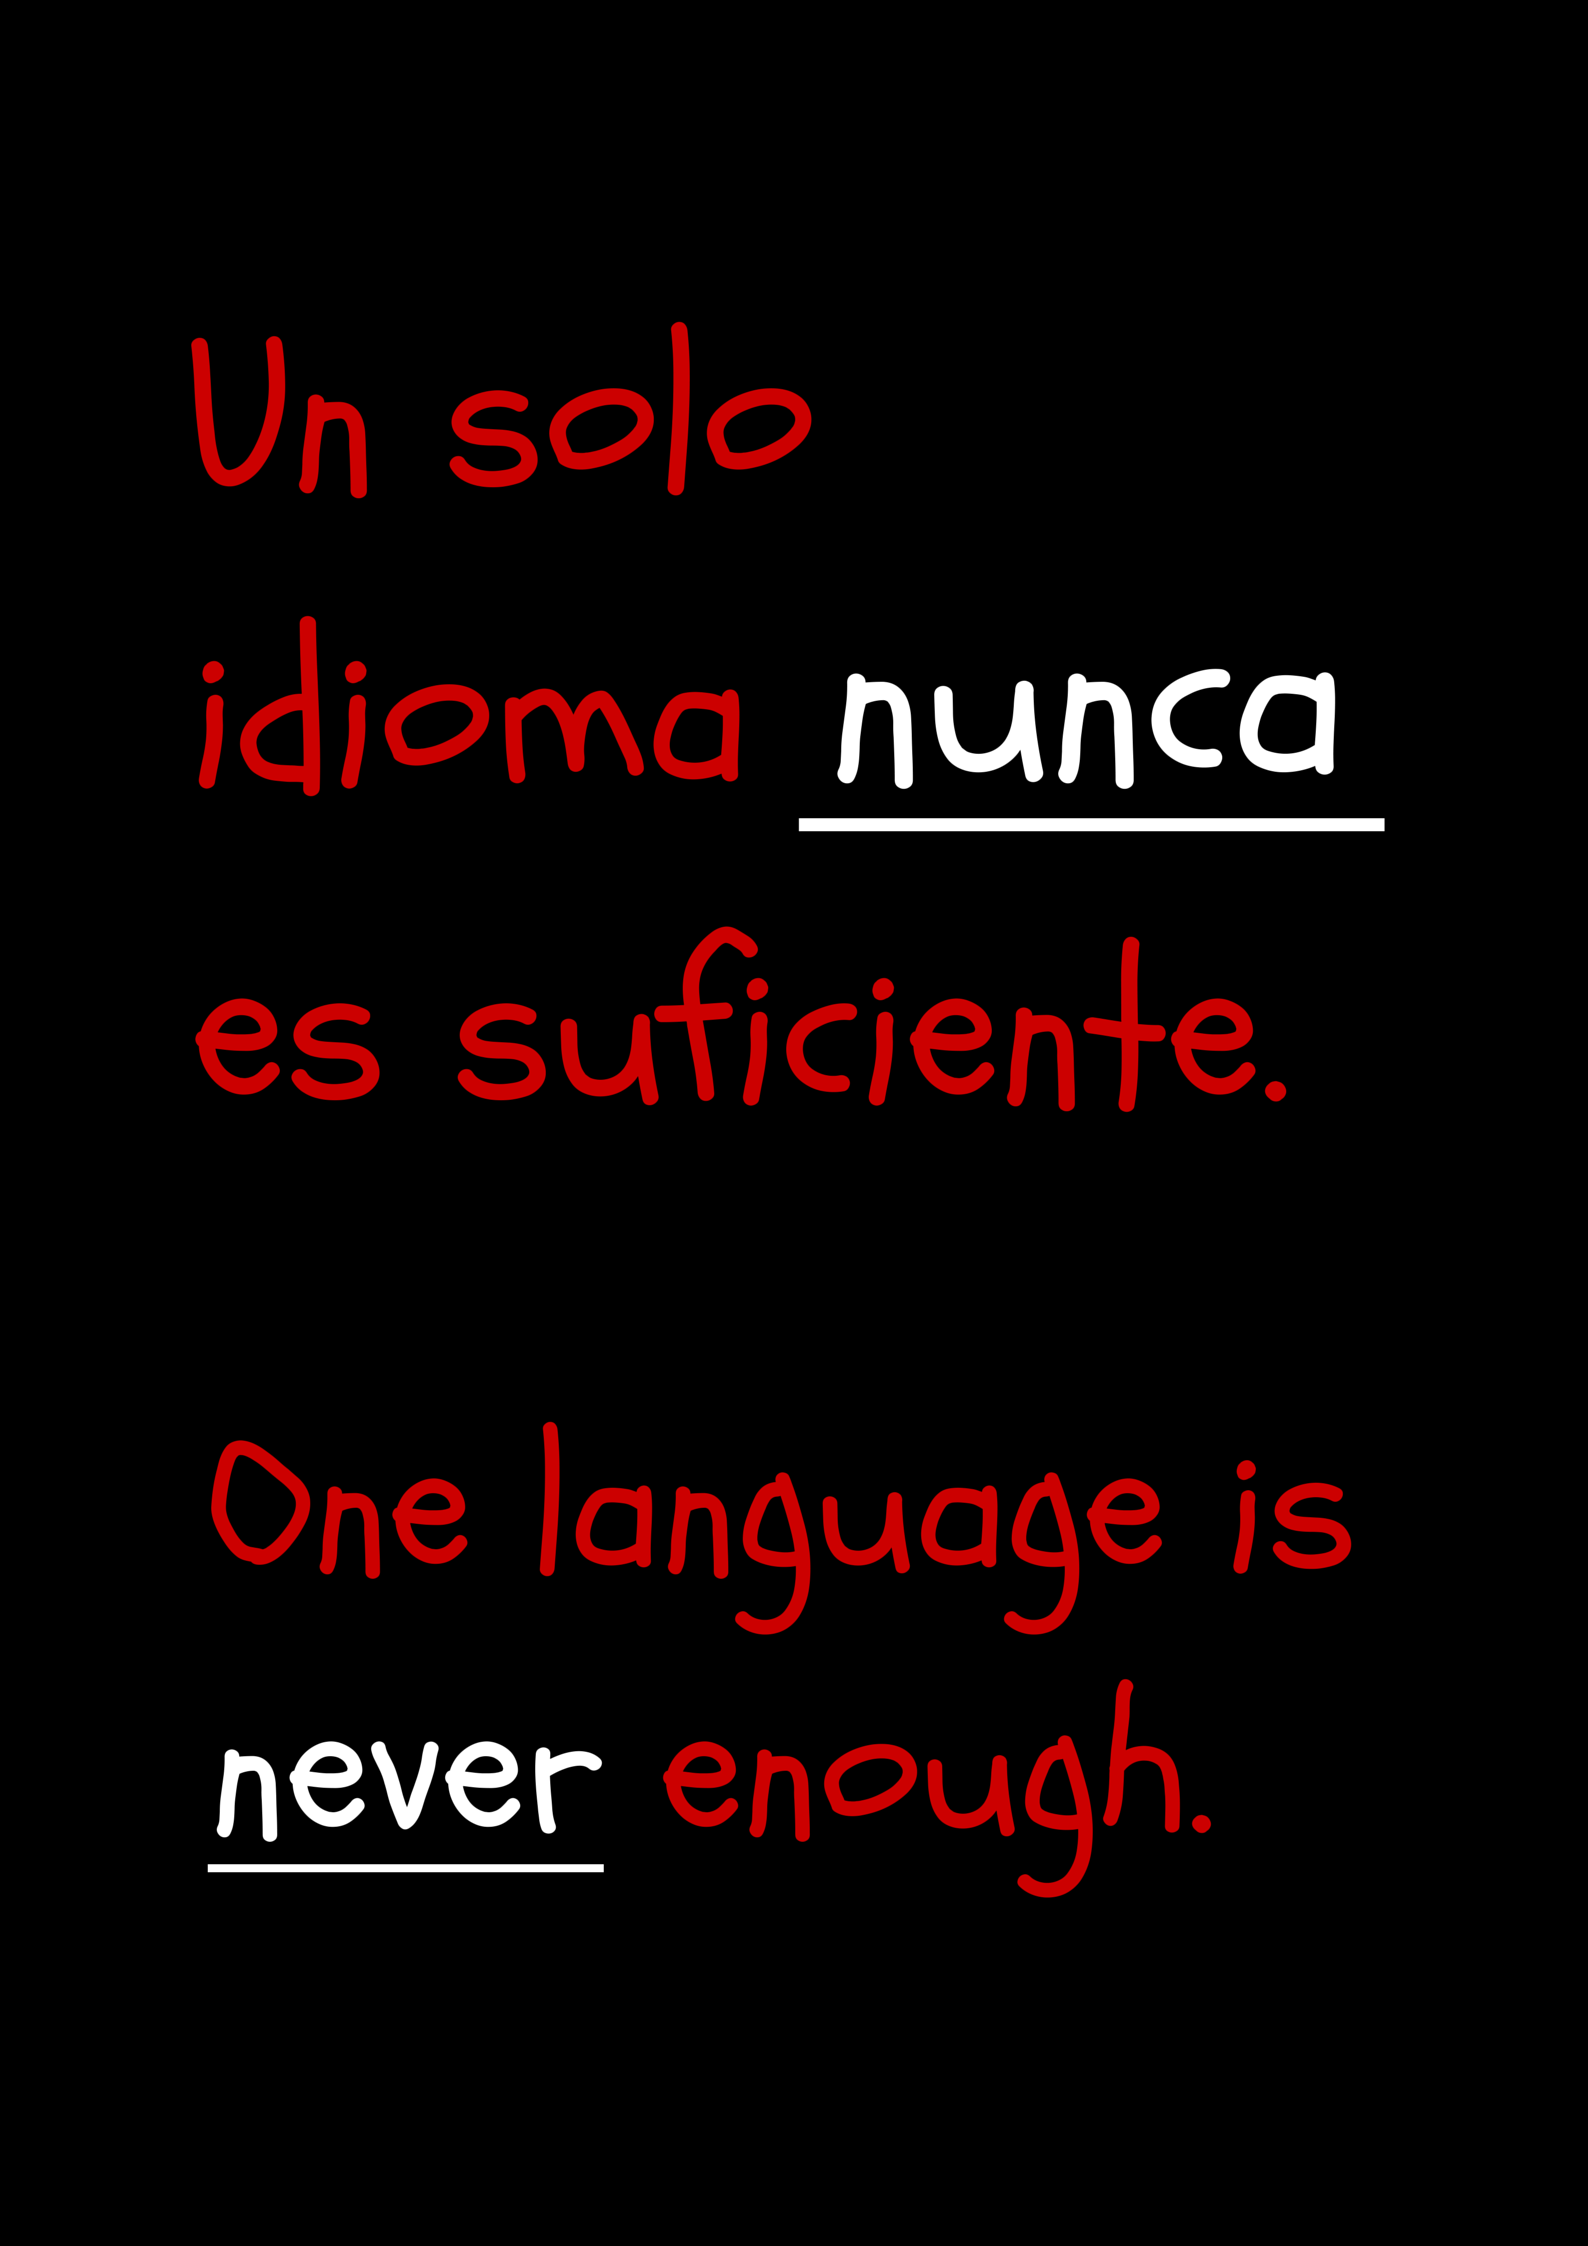 Un solo idioma nunca es suficiente – Only one language is never enough.